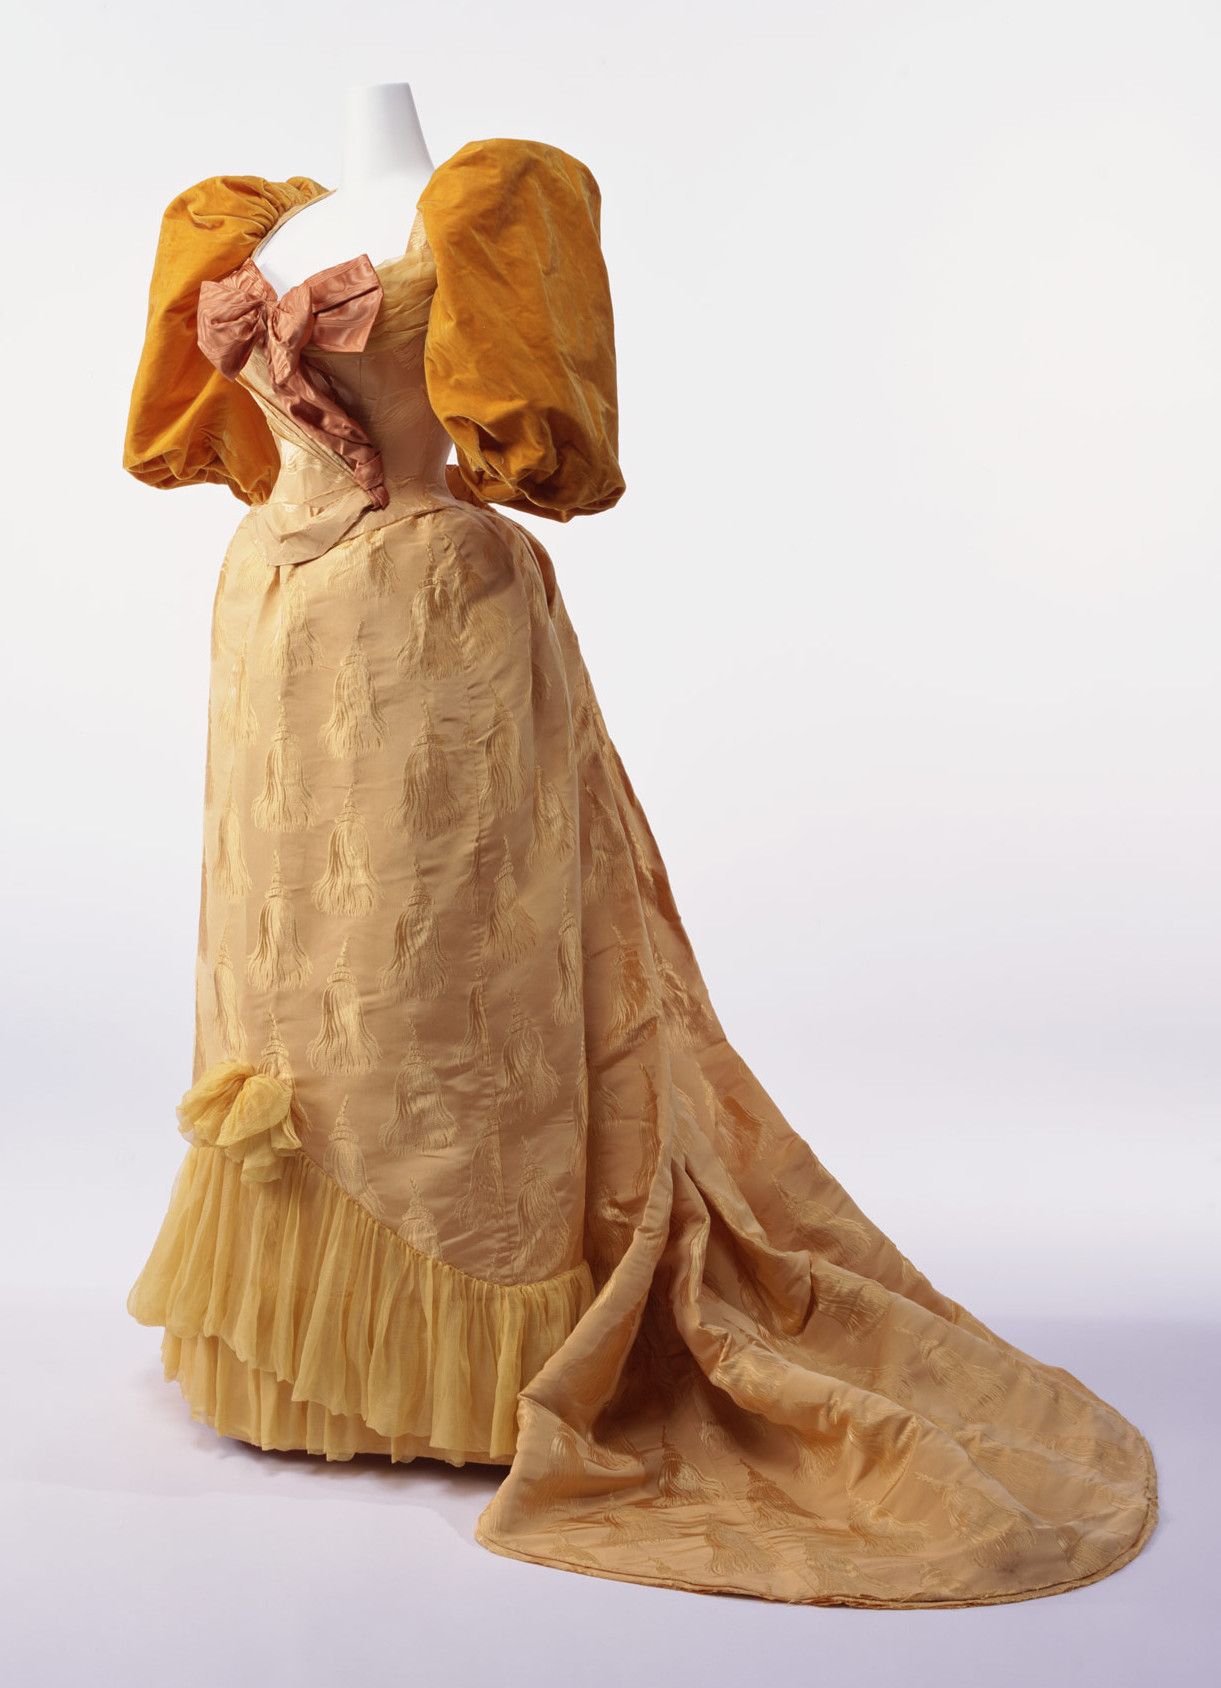 1894. Ball Gown. silk brocade with tassel pattern; two-piece dress with gigot sleeves; silk taffeta bow at breast; silk chiffon decoration at hem of skirt. Credit KCI